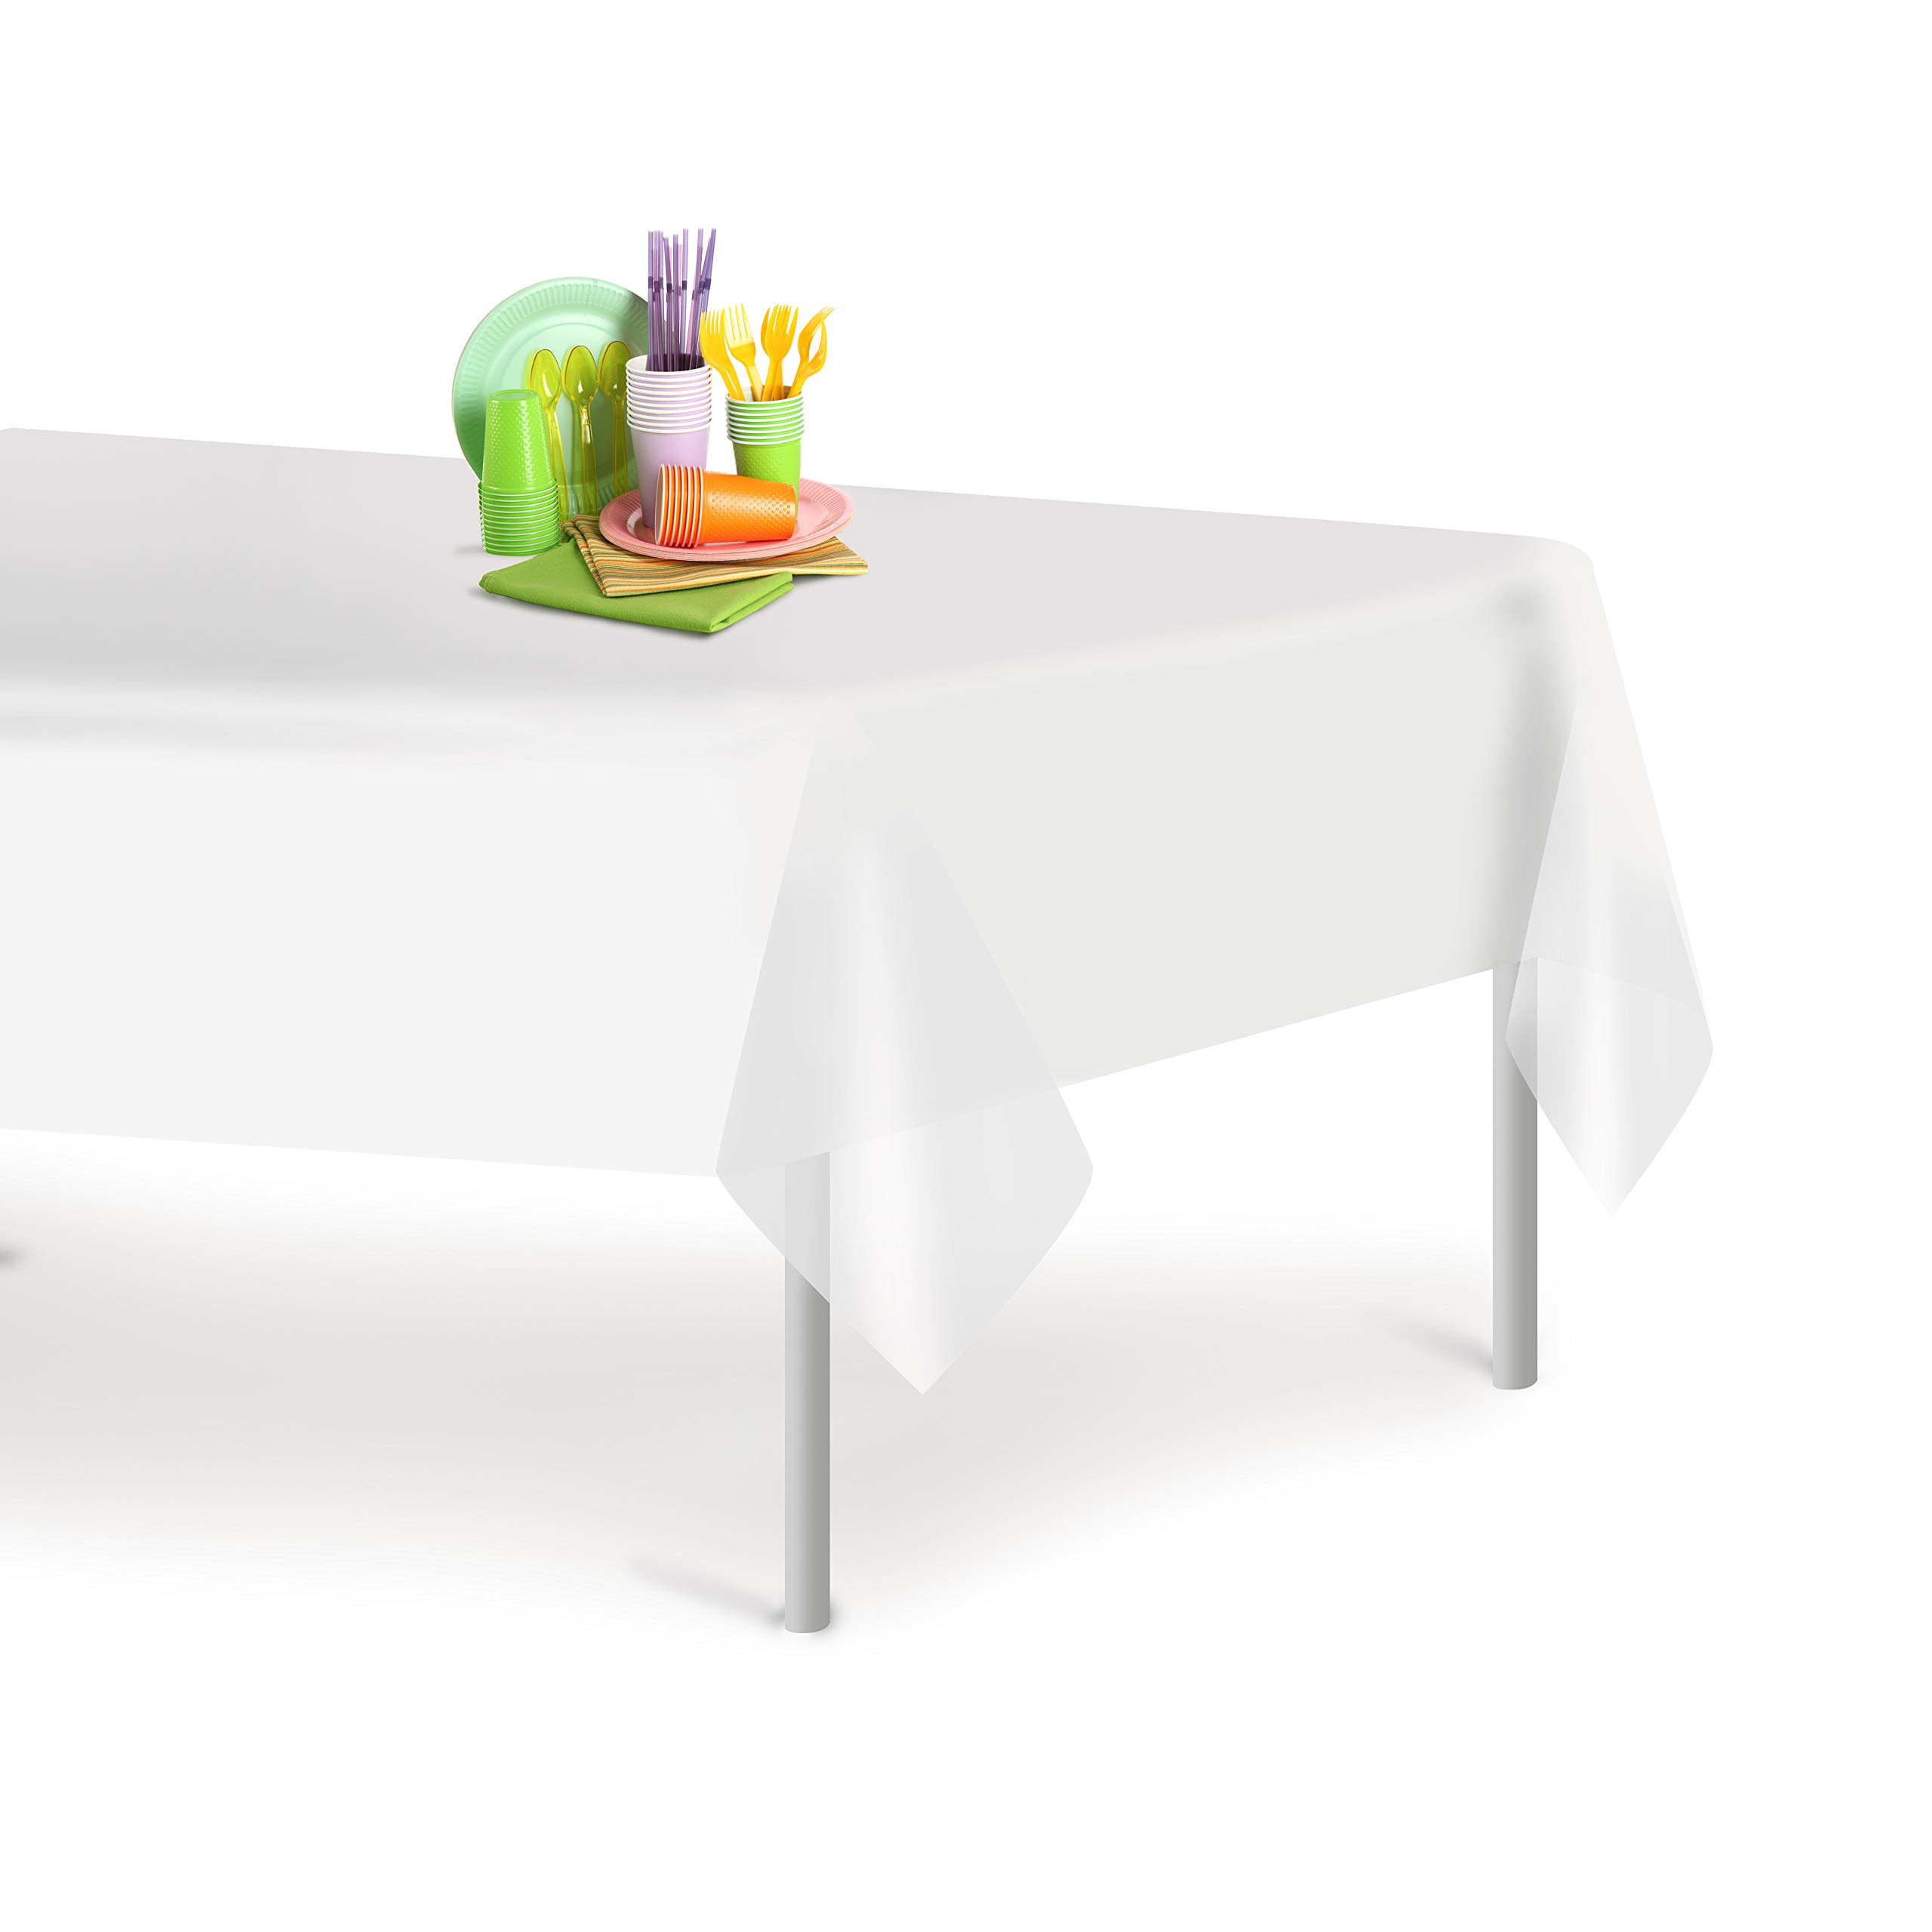 White 6 Pack Premium Disposable Plastic Tablecloth 54 Inch. x 108 Inch. Rectangle Table Cover By Grandipity by Grandipity (Image #1)